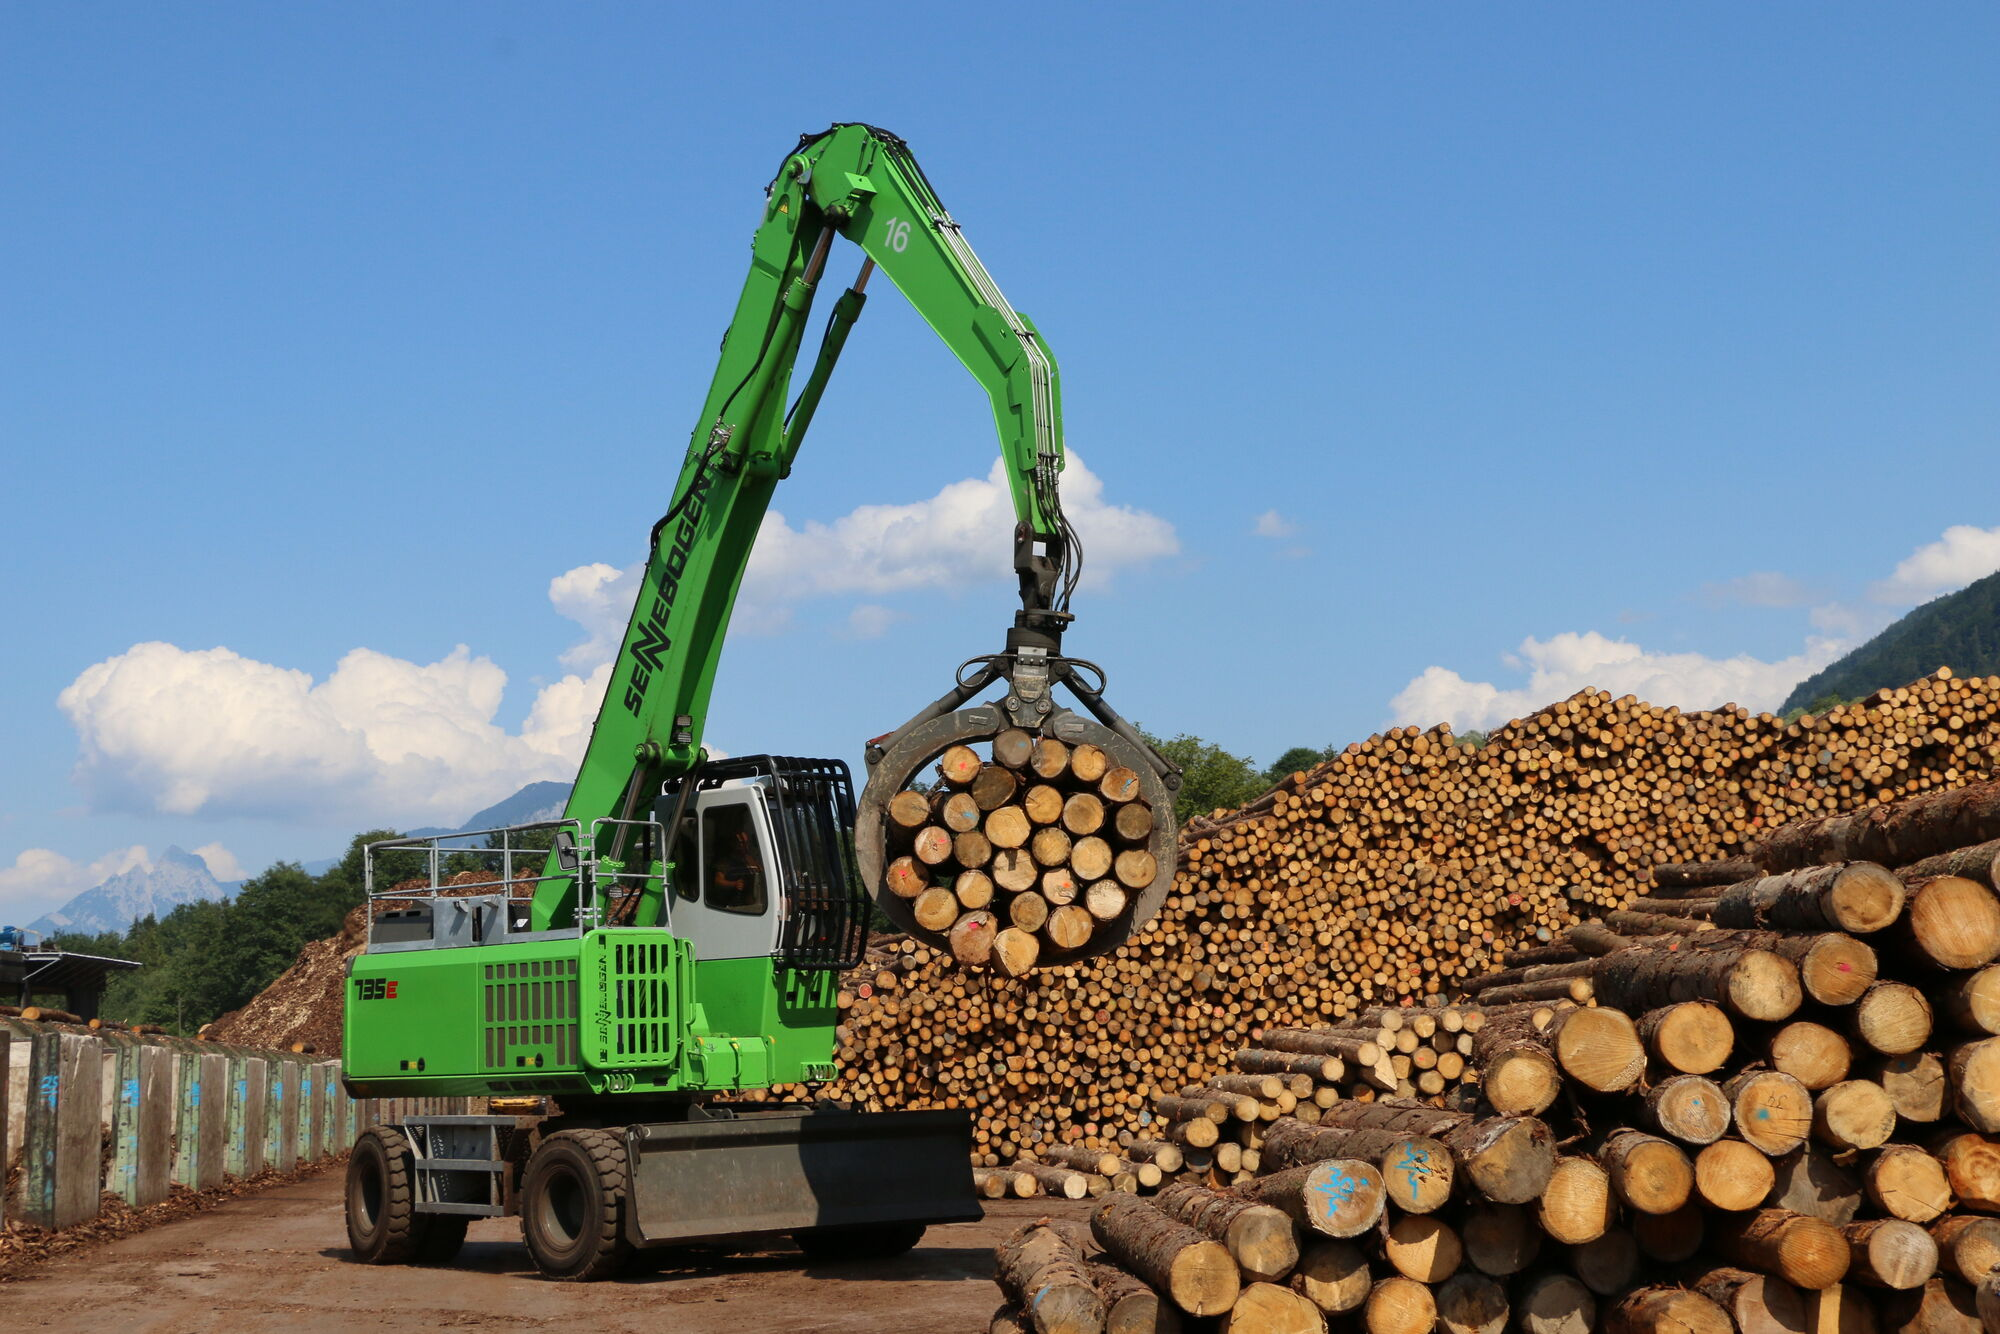 SENNEBOGEN 735 E material handler for timber handling with mobile electric travel drive Green Efficiency Drive